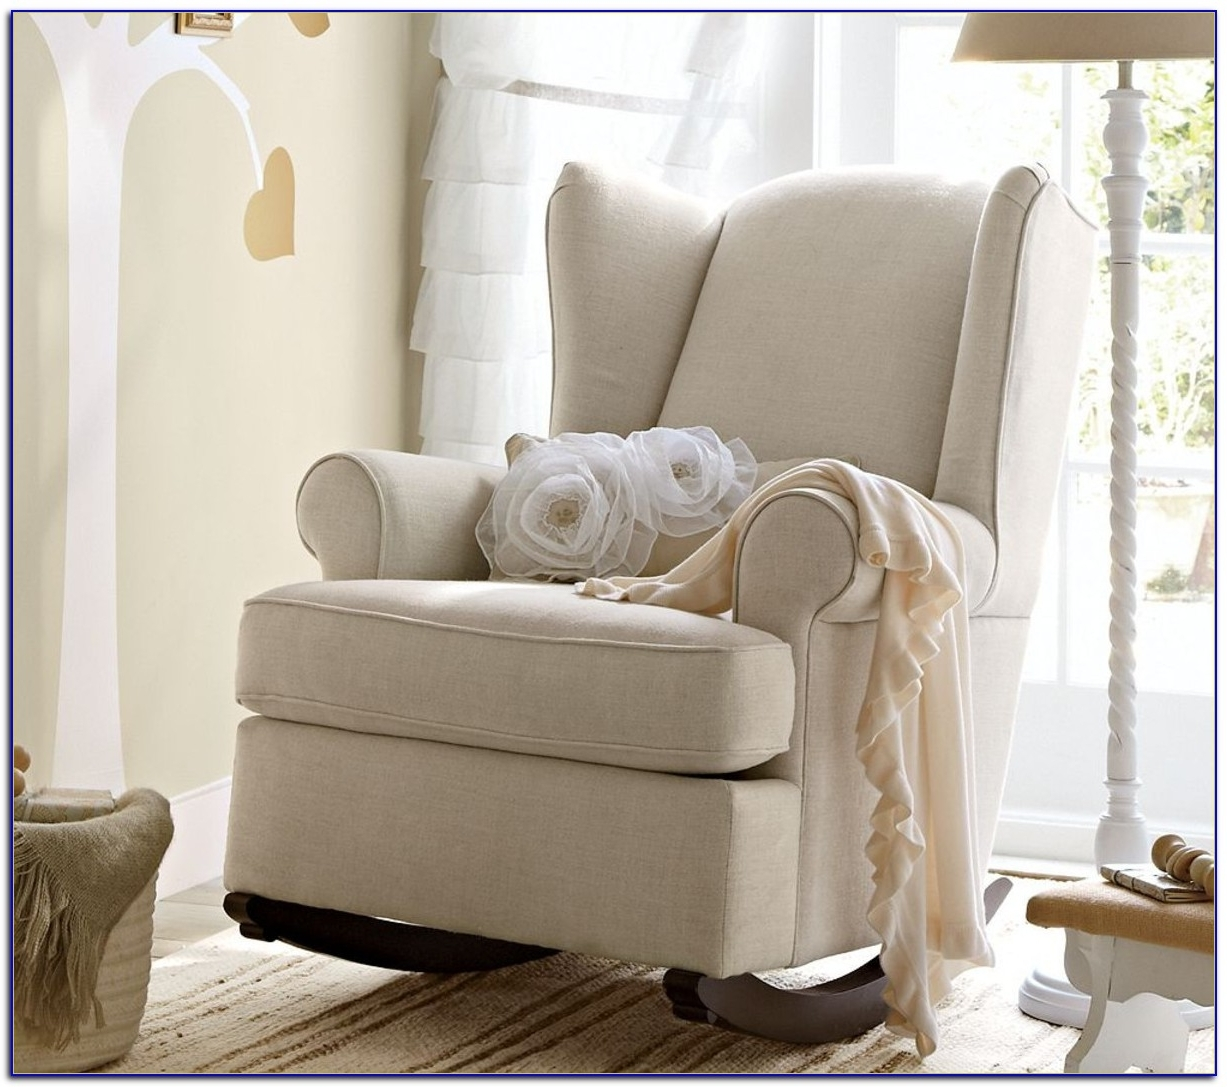 Rocking Chairs At Target Throughout Latest Rocking Chair Nursery Target J60S On Excellent Small Home Remodel (View 16 of 20)